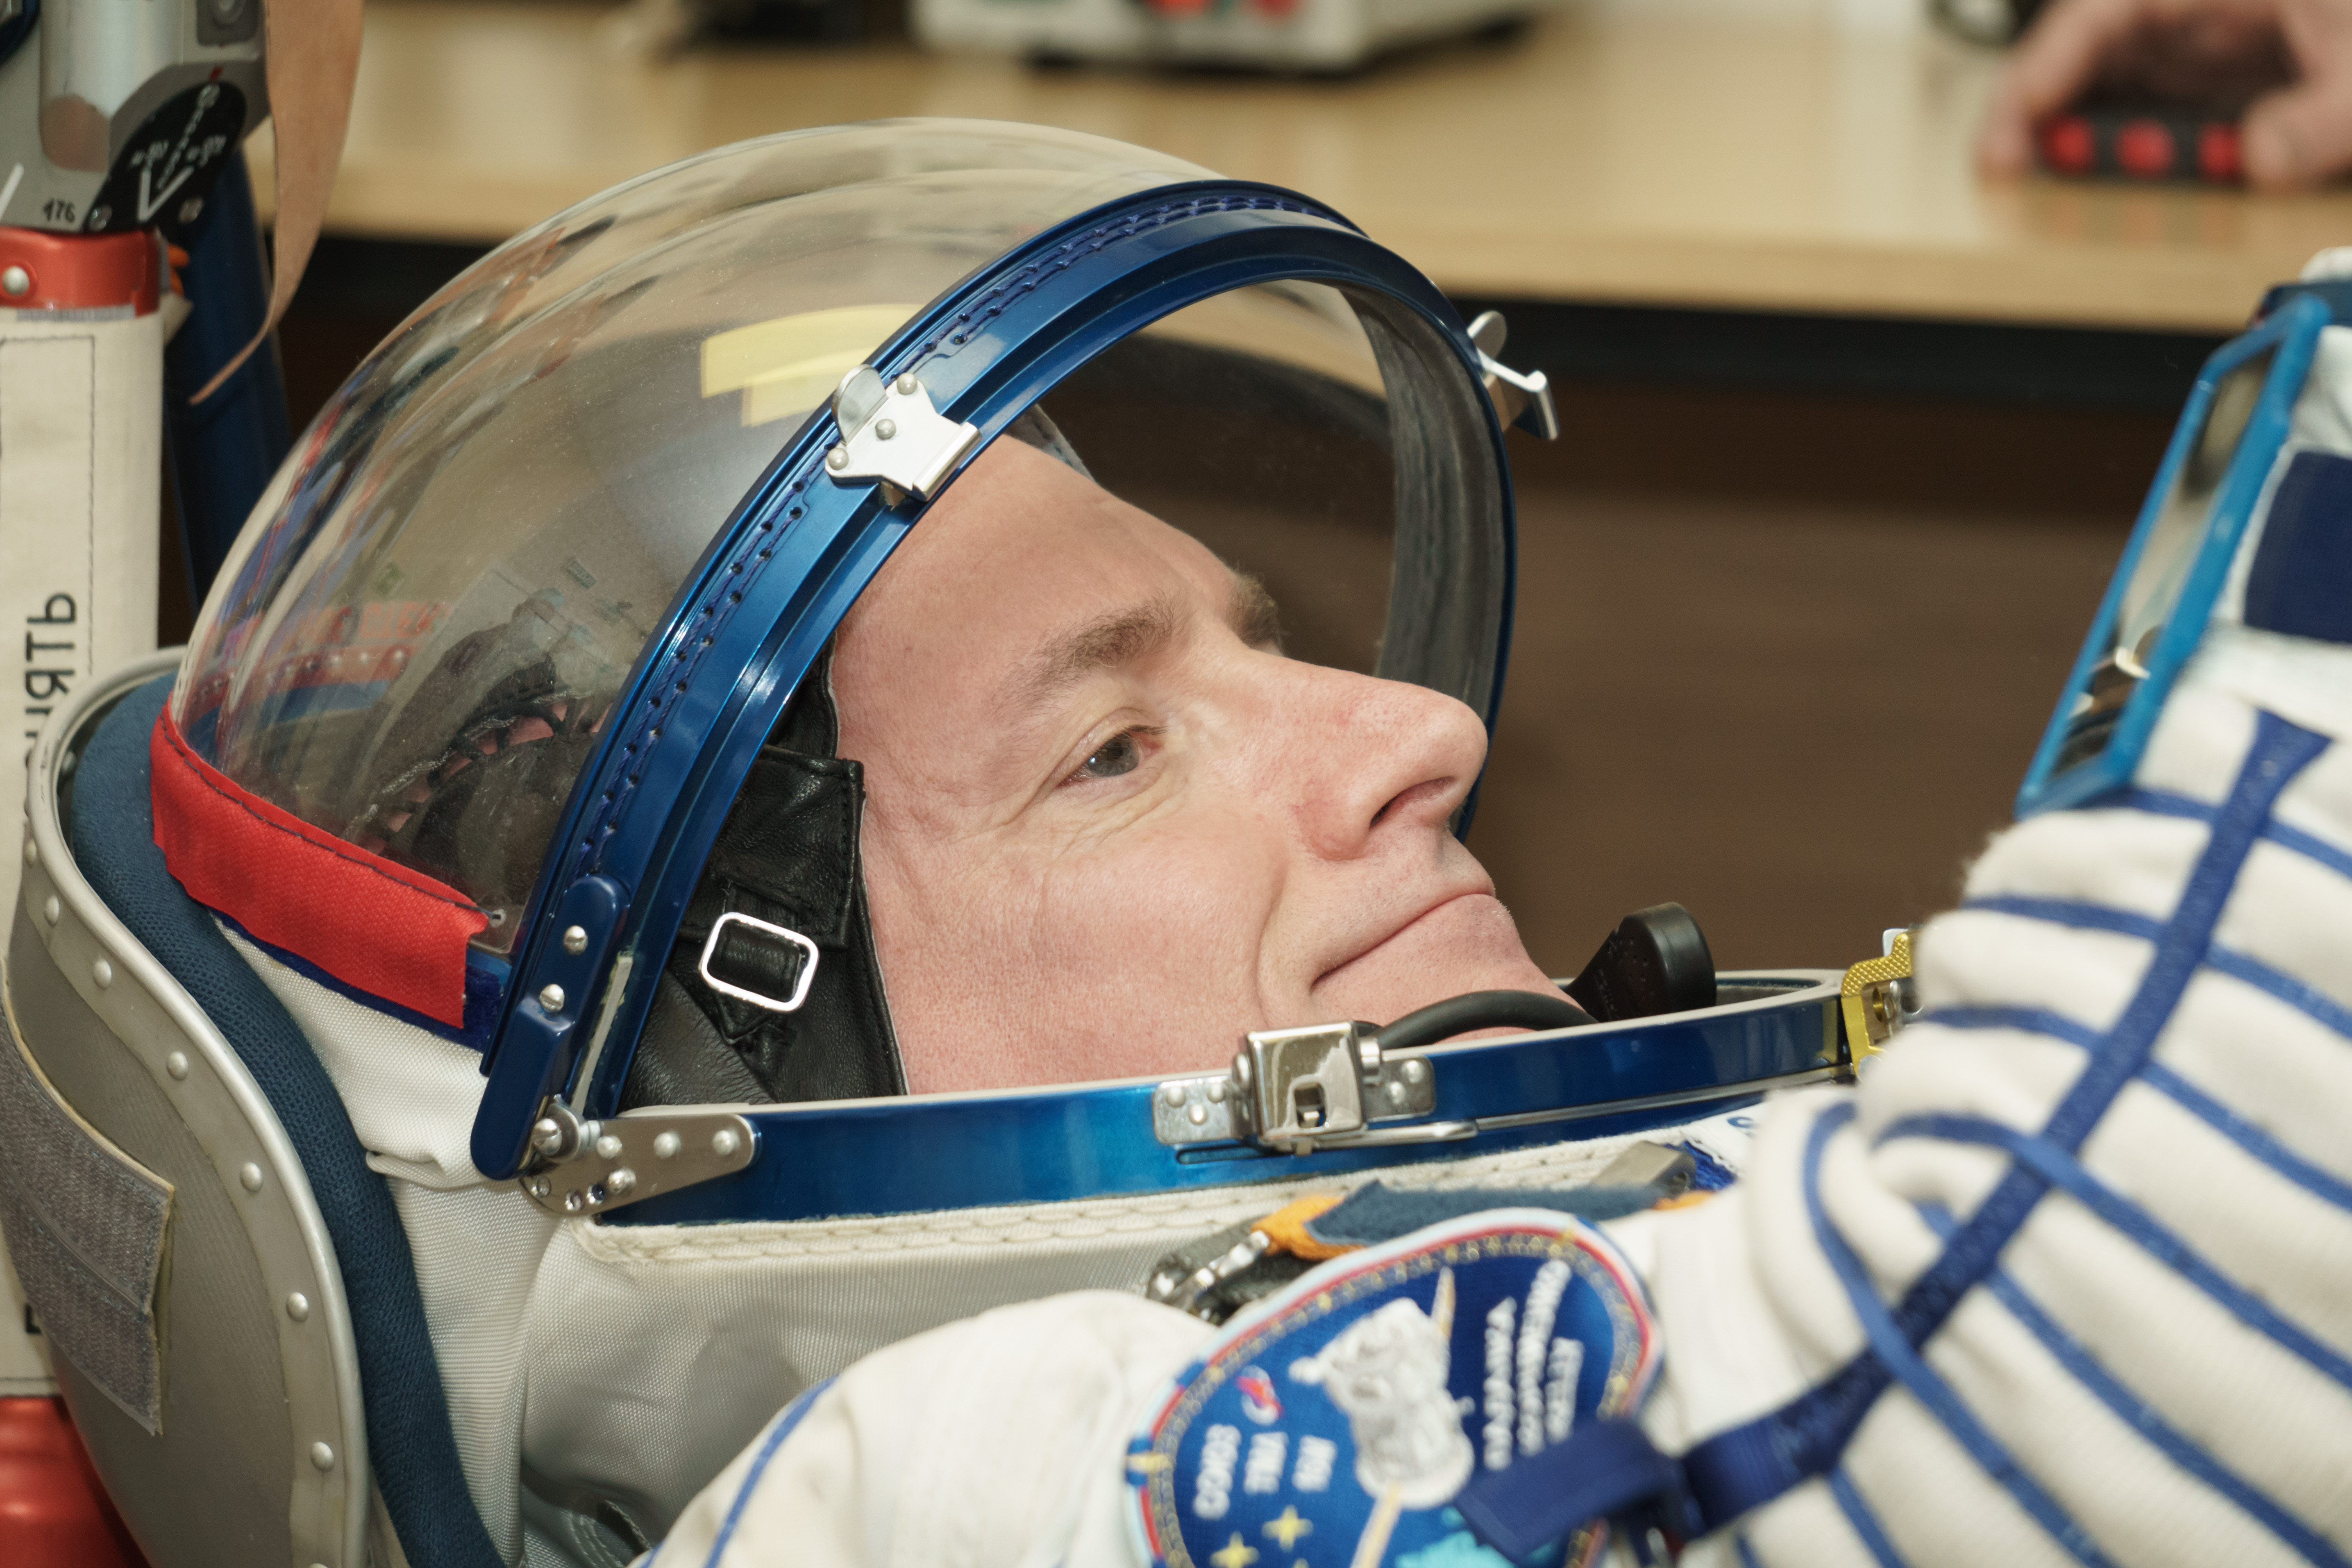 Scott Kelly in space suit close up